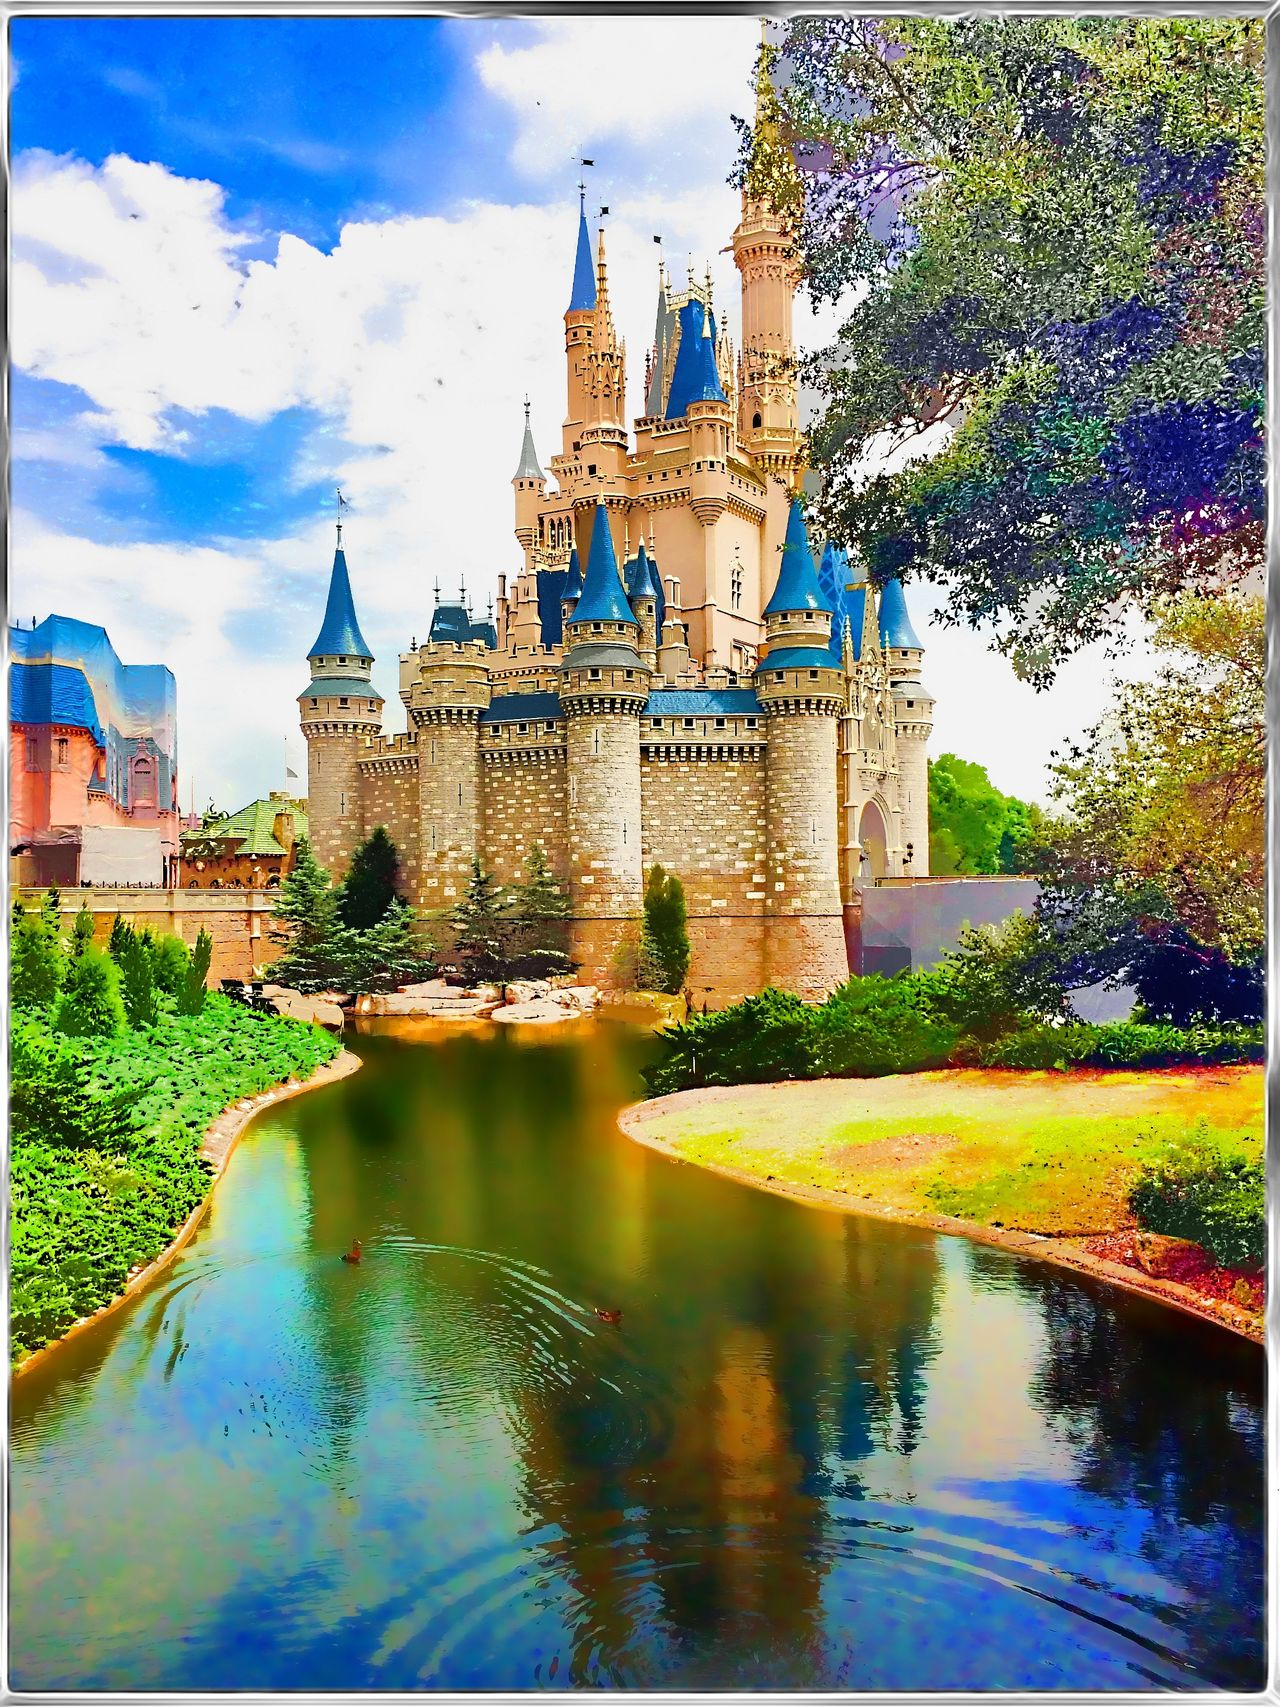 Dreams do Come True Architecture Castle Cinderilla's Castle Digital Painting DisneyWorld Famous Place Outdoors Travel Water